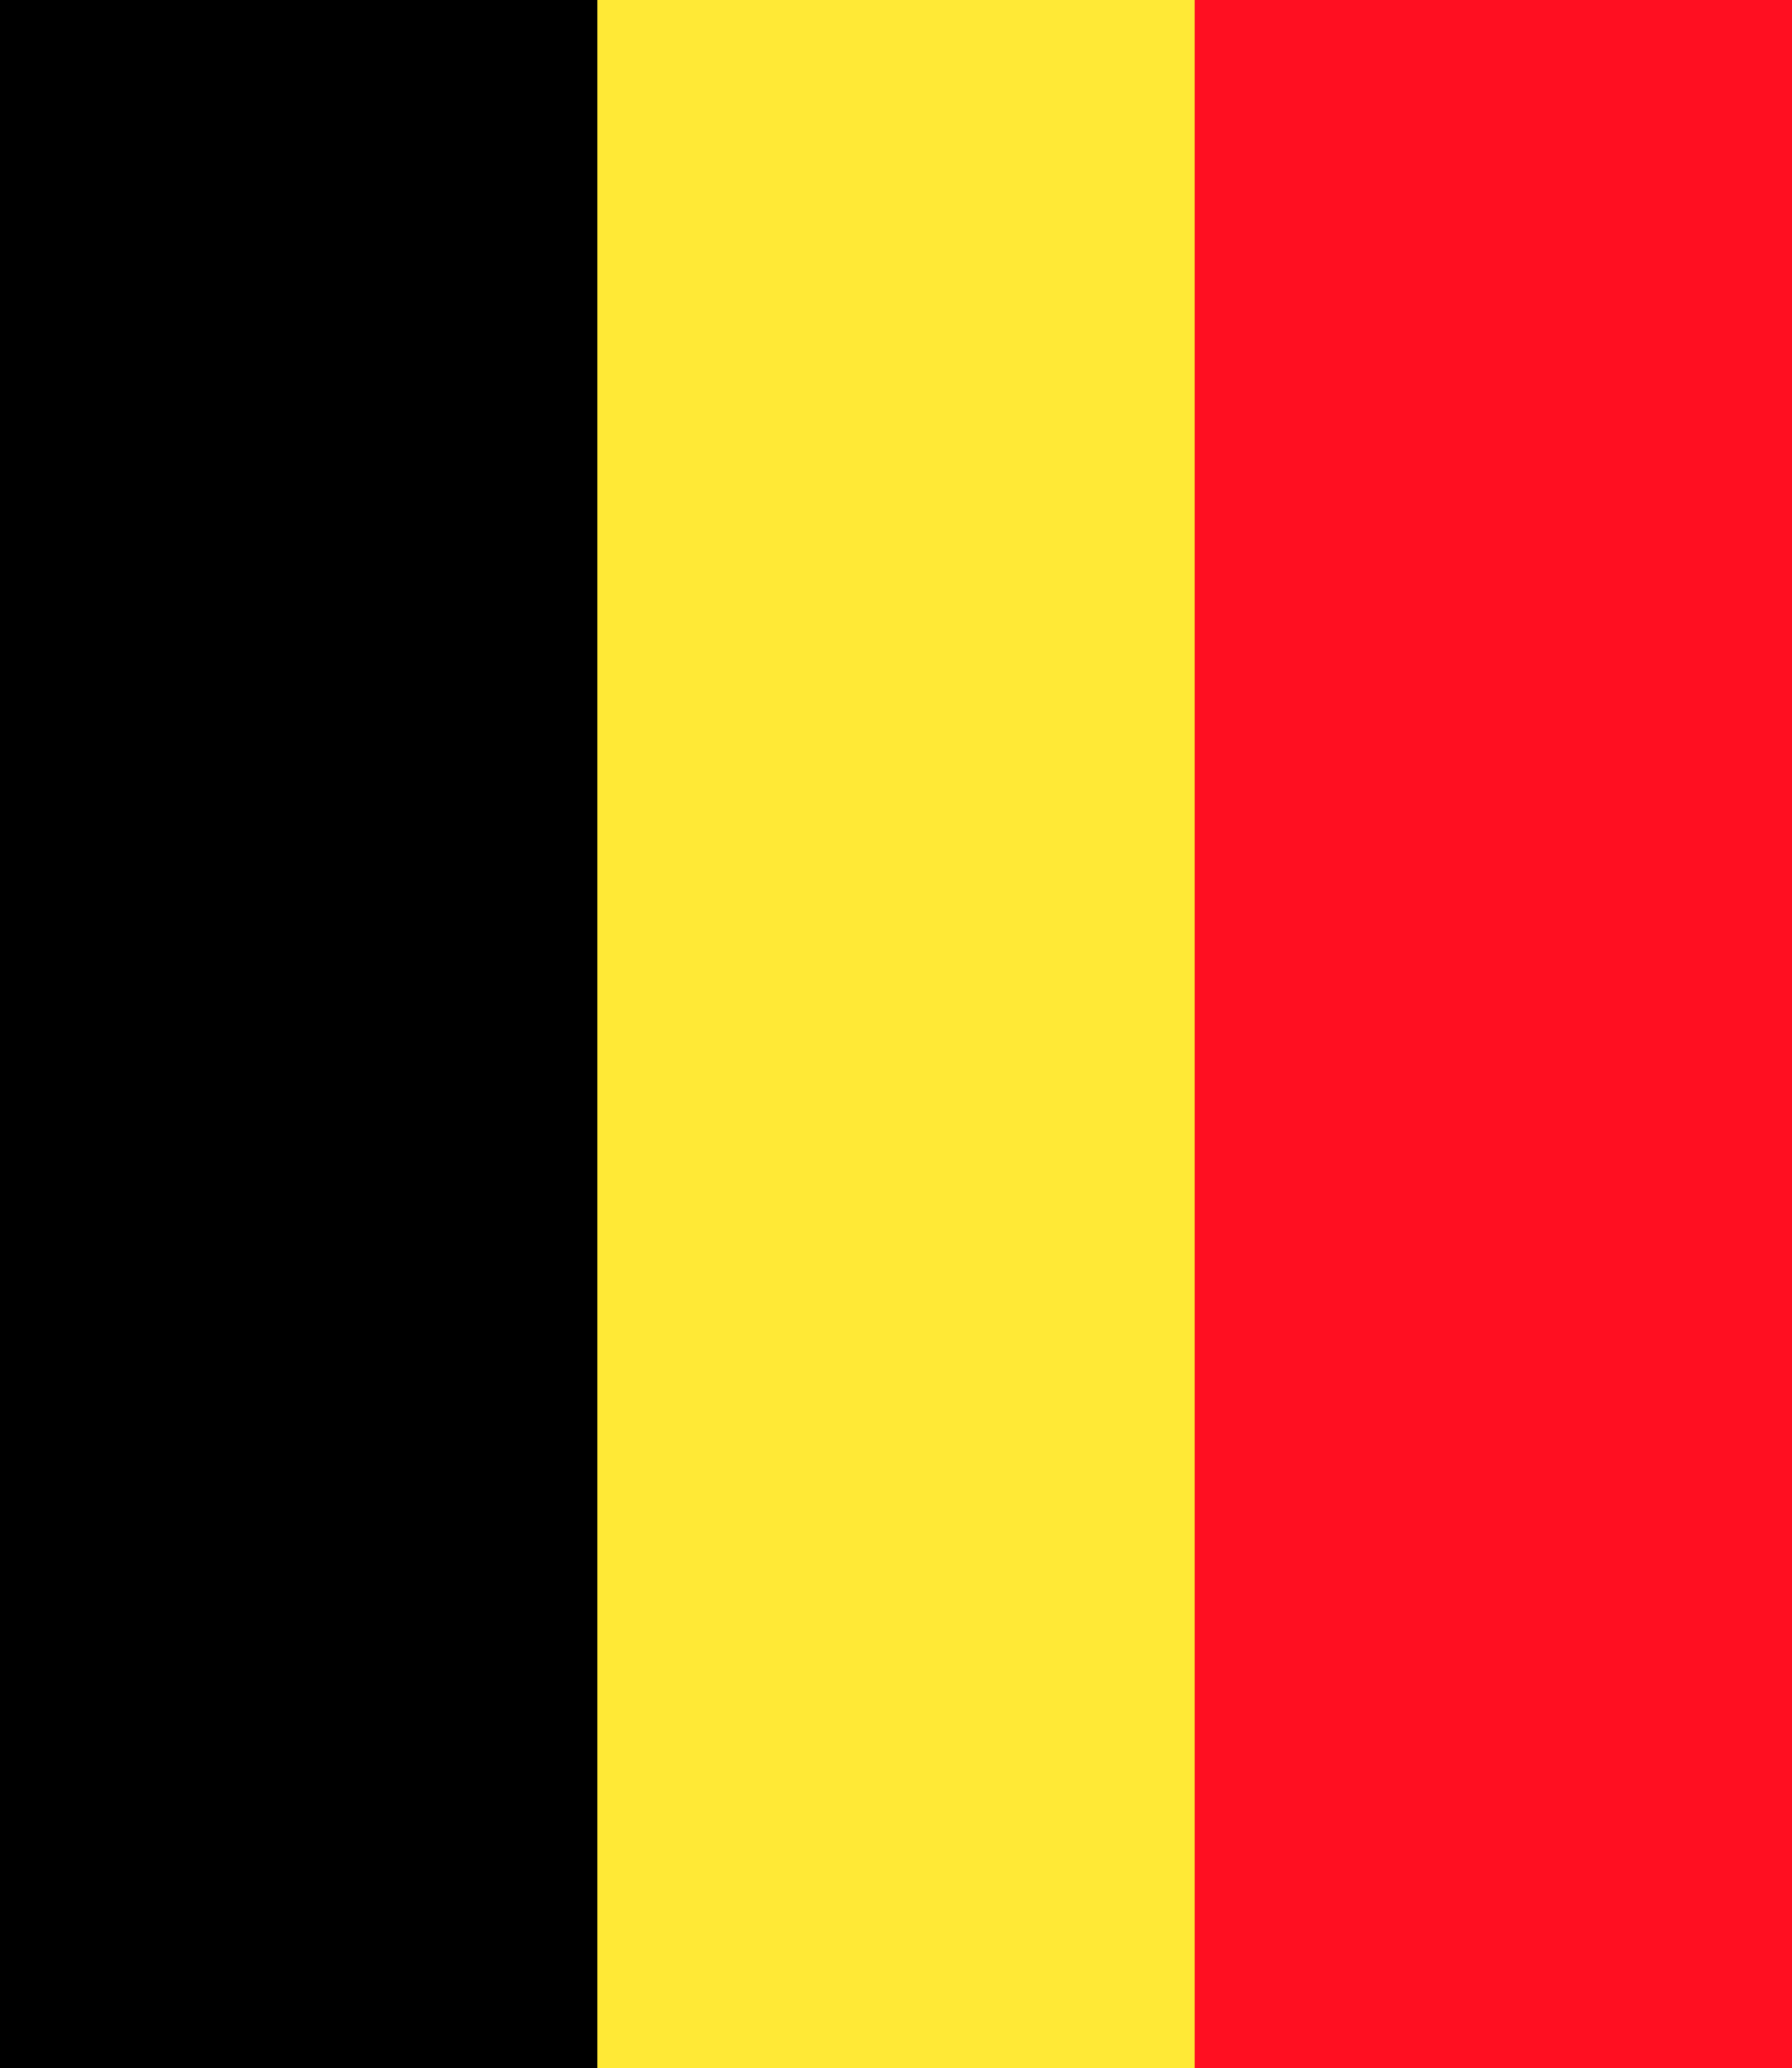 The Flag of Belgium by AdamStanislav